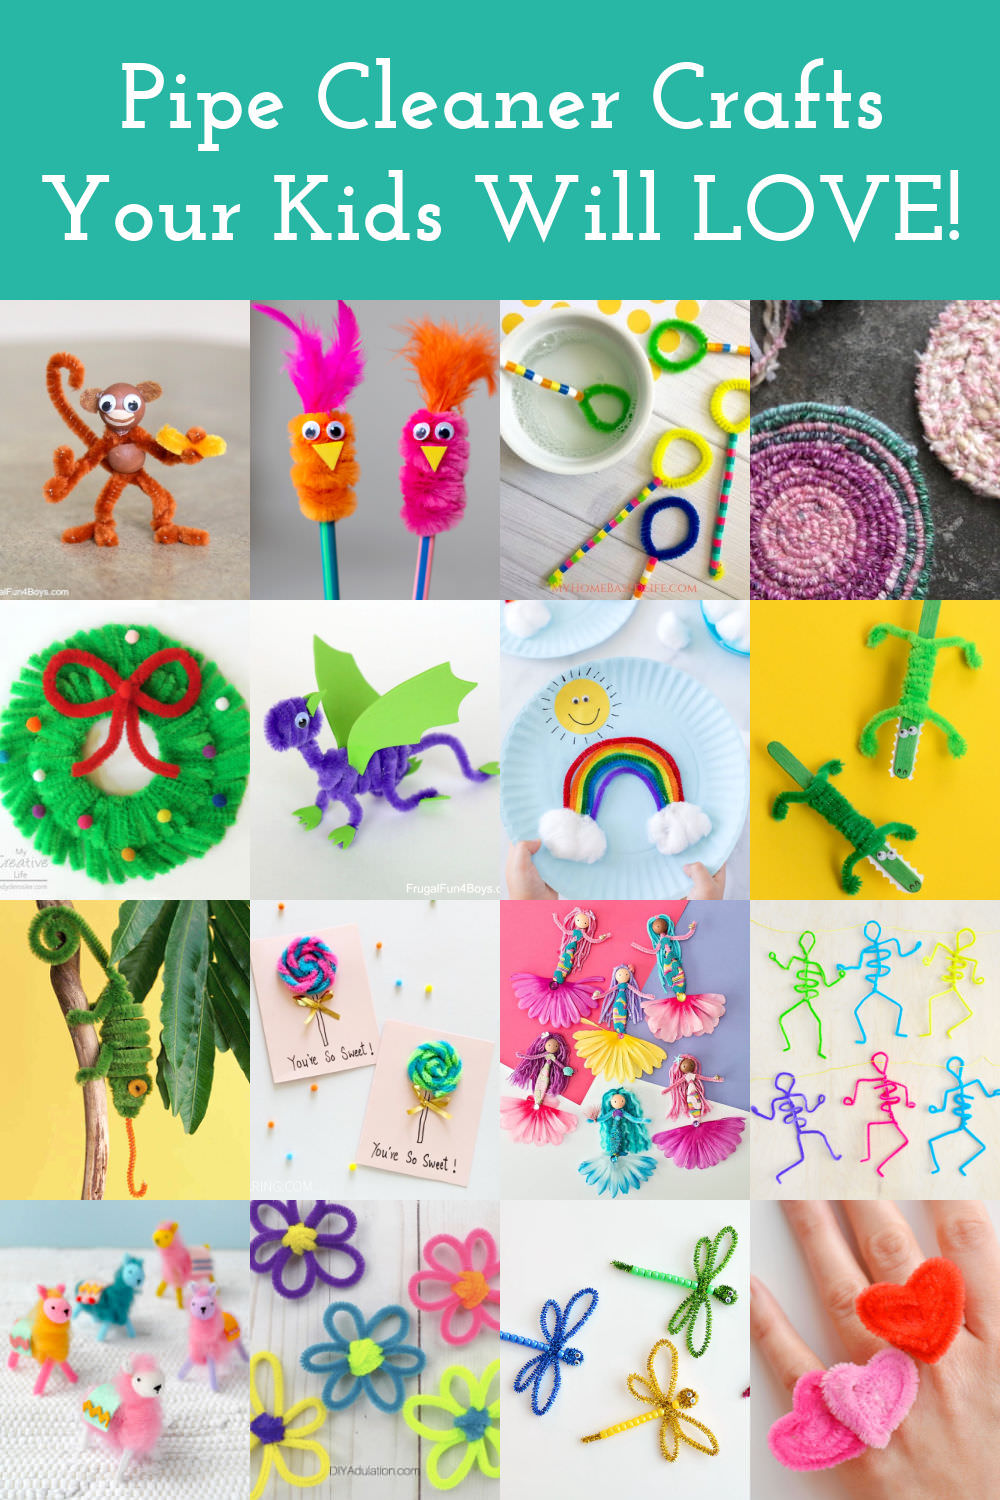 Pipe-cleaner-crafts-your-kids-will-love